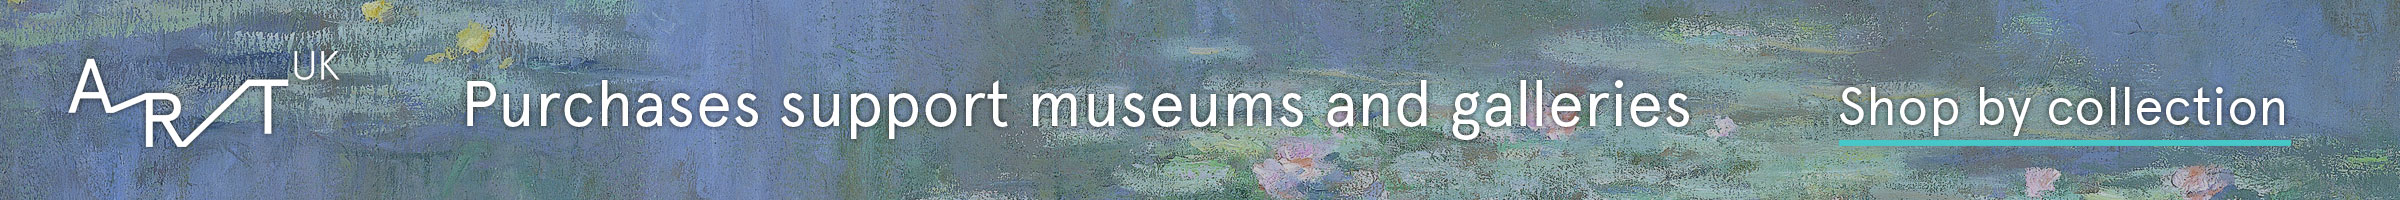 Purchases support museums and galleries. Shop by collection.